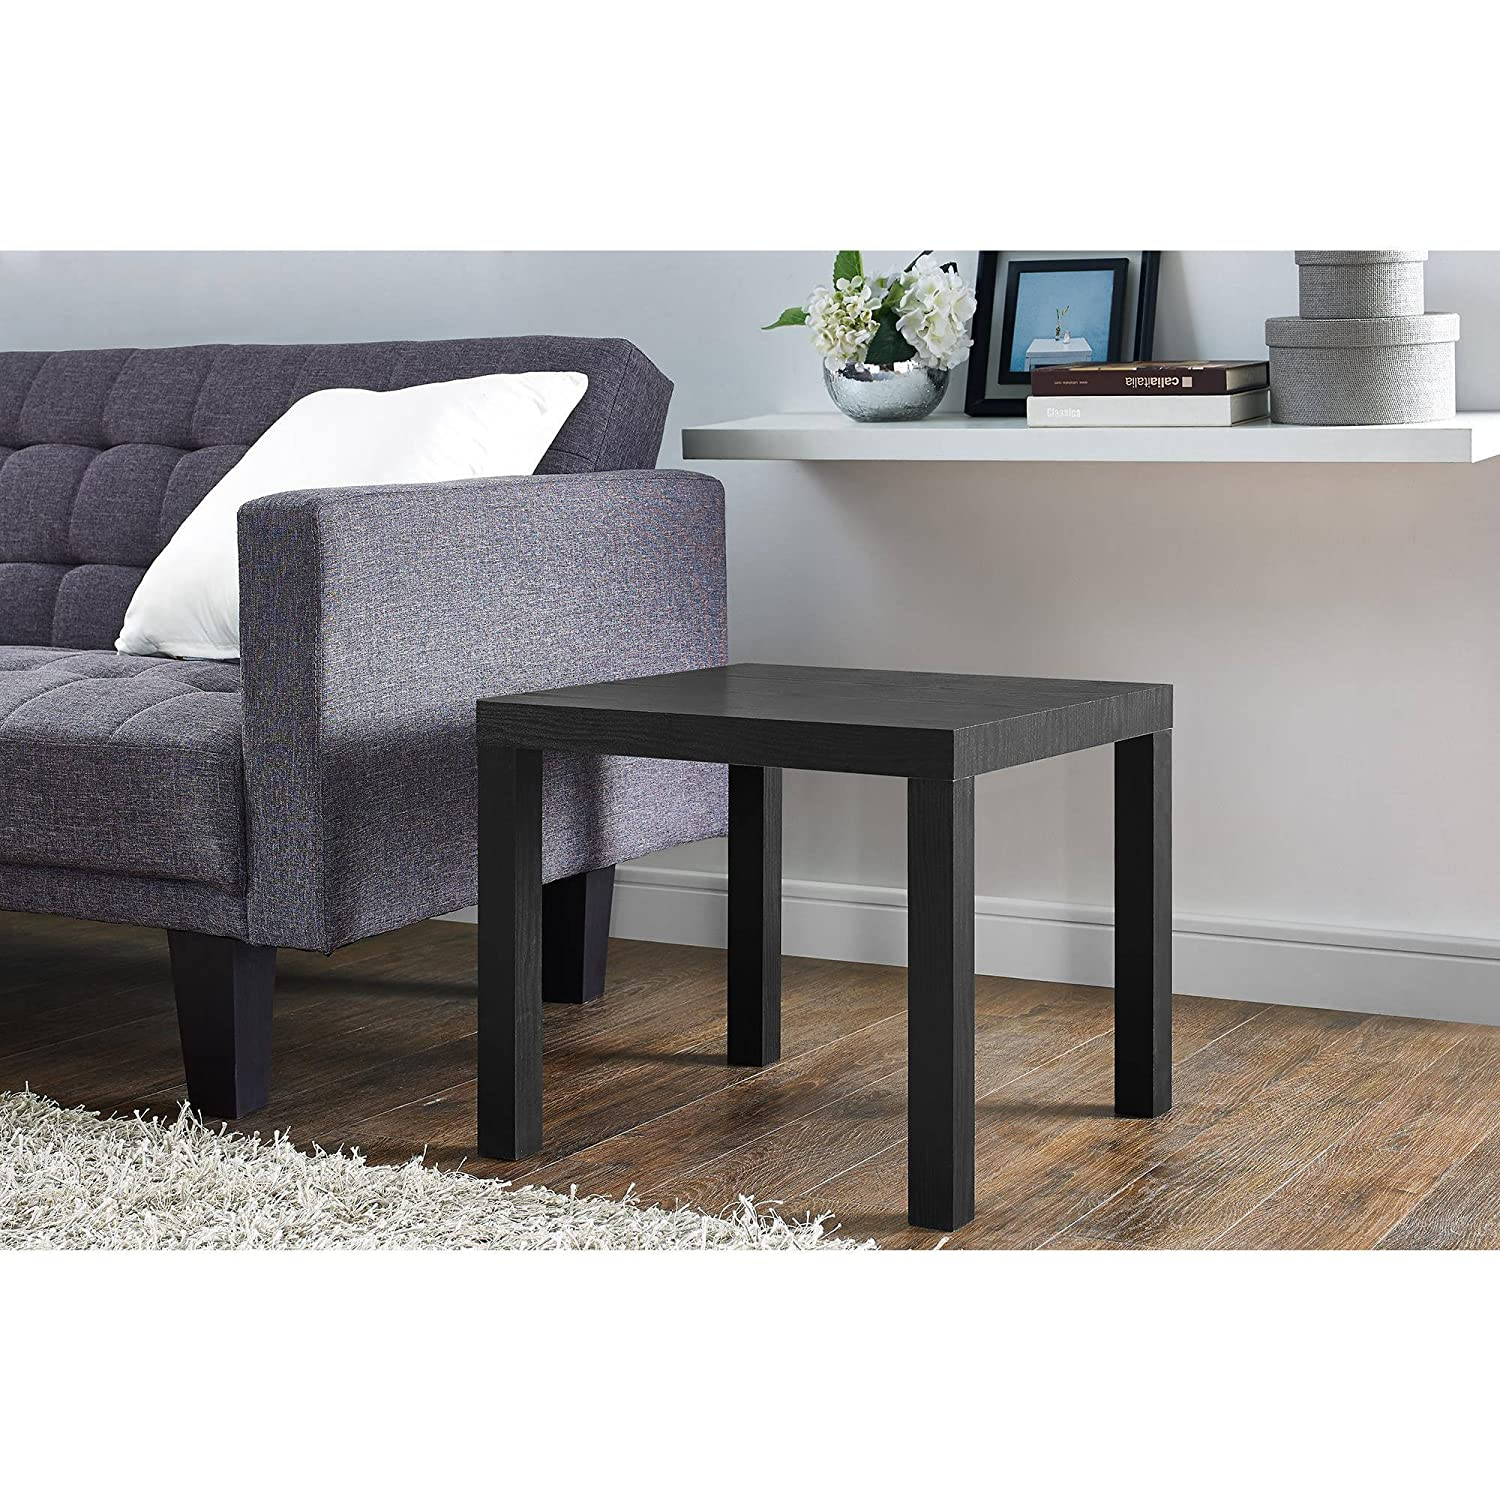 Amazon Mainstays Parsons End Table Multiple Colors Black